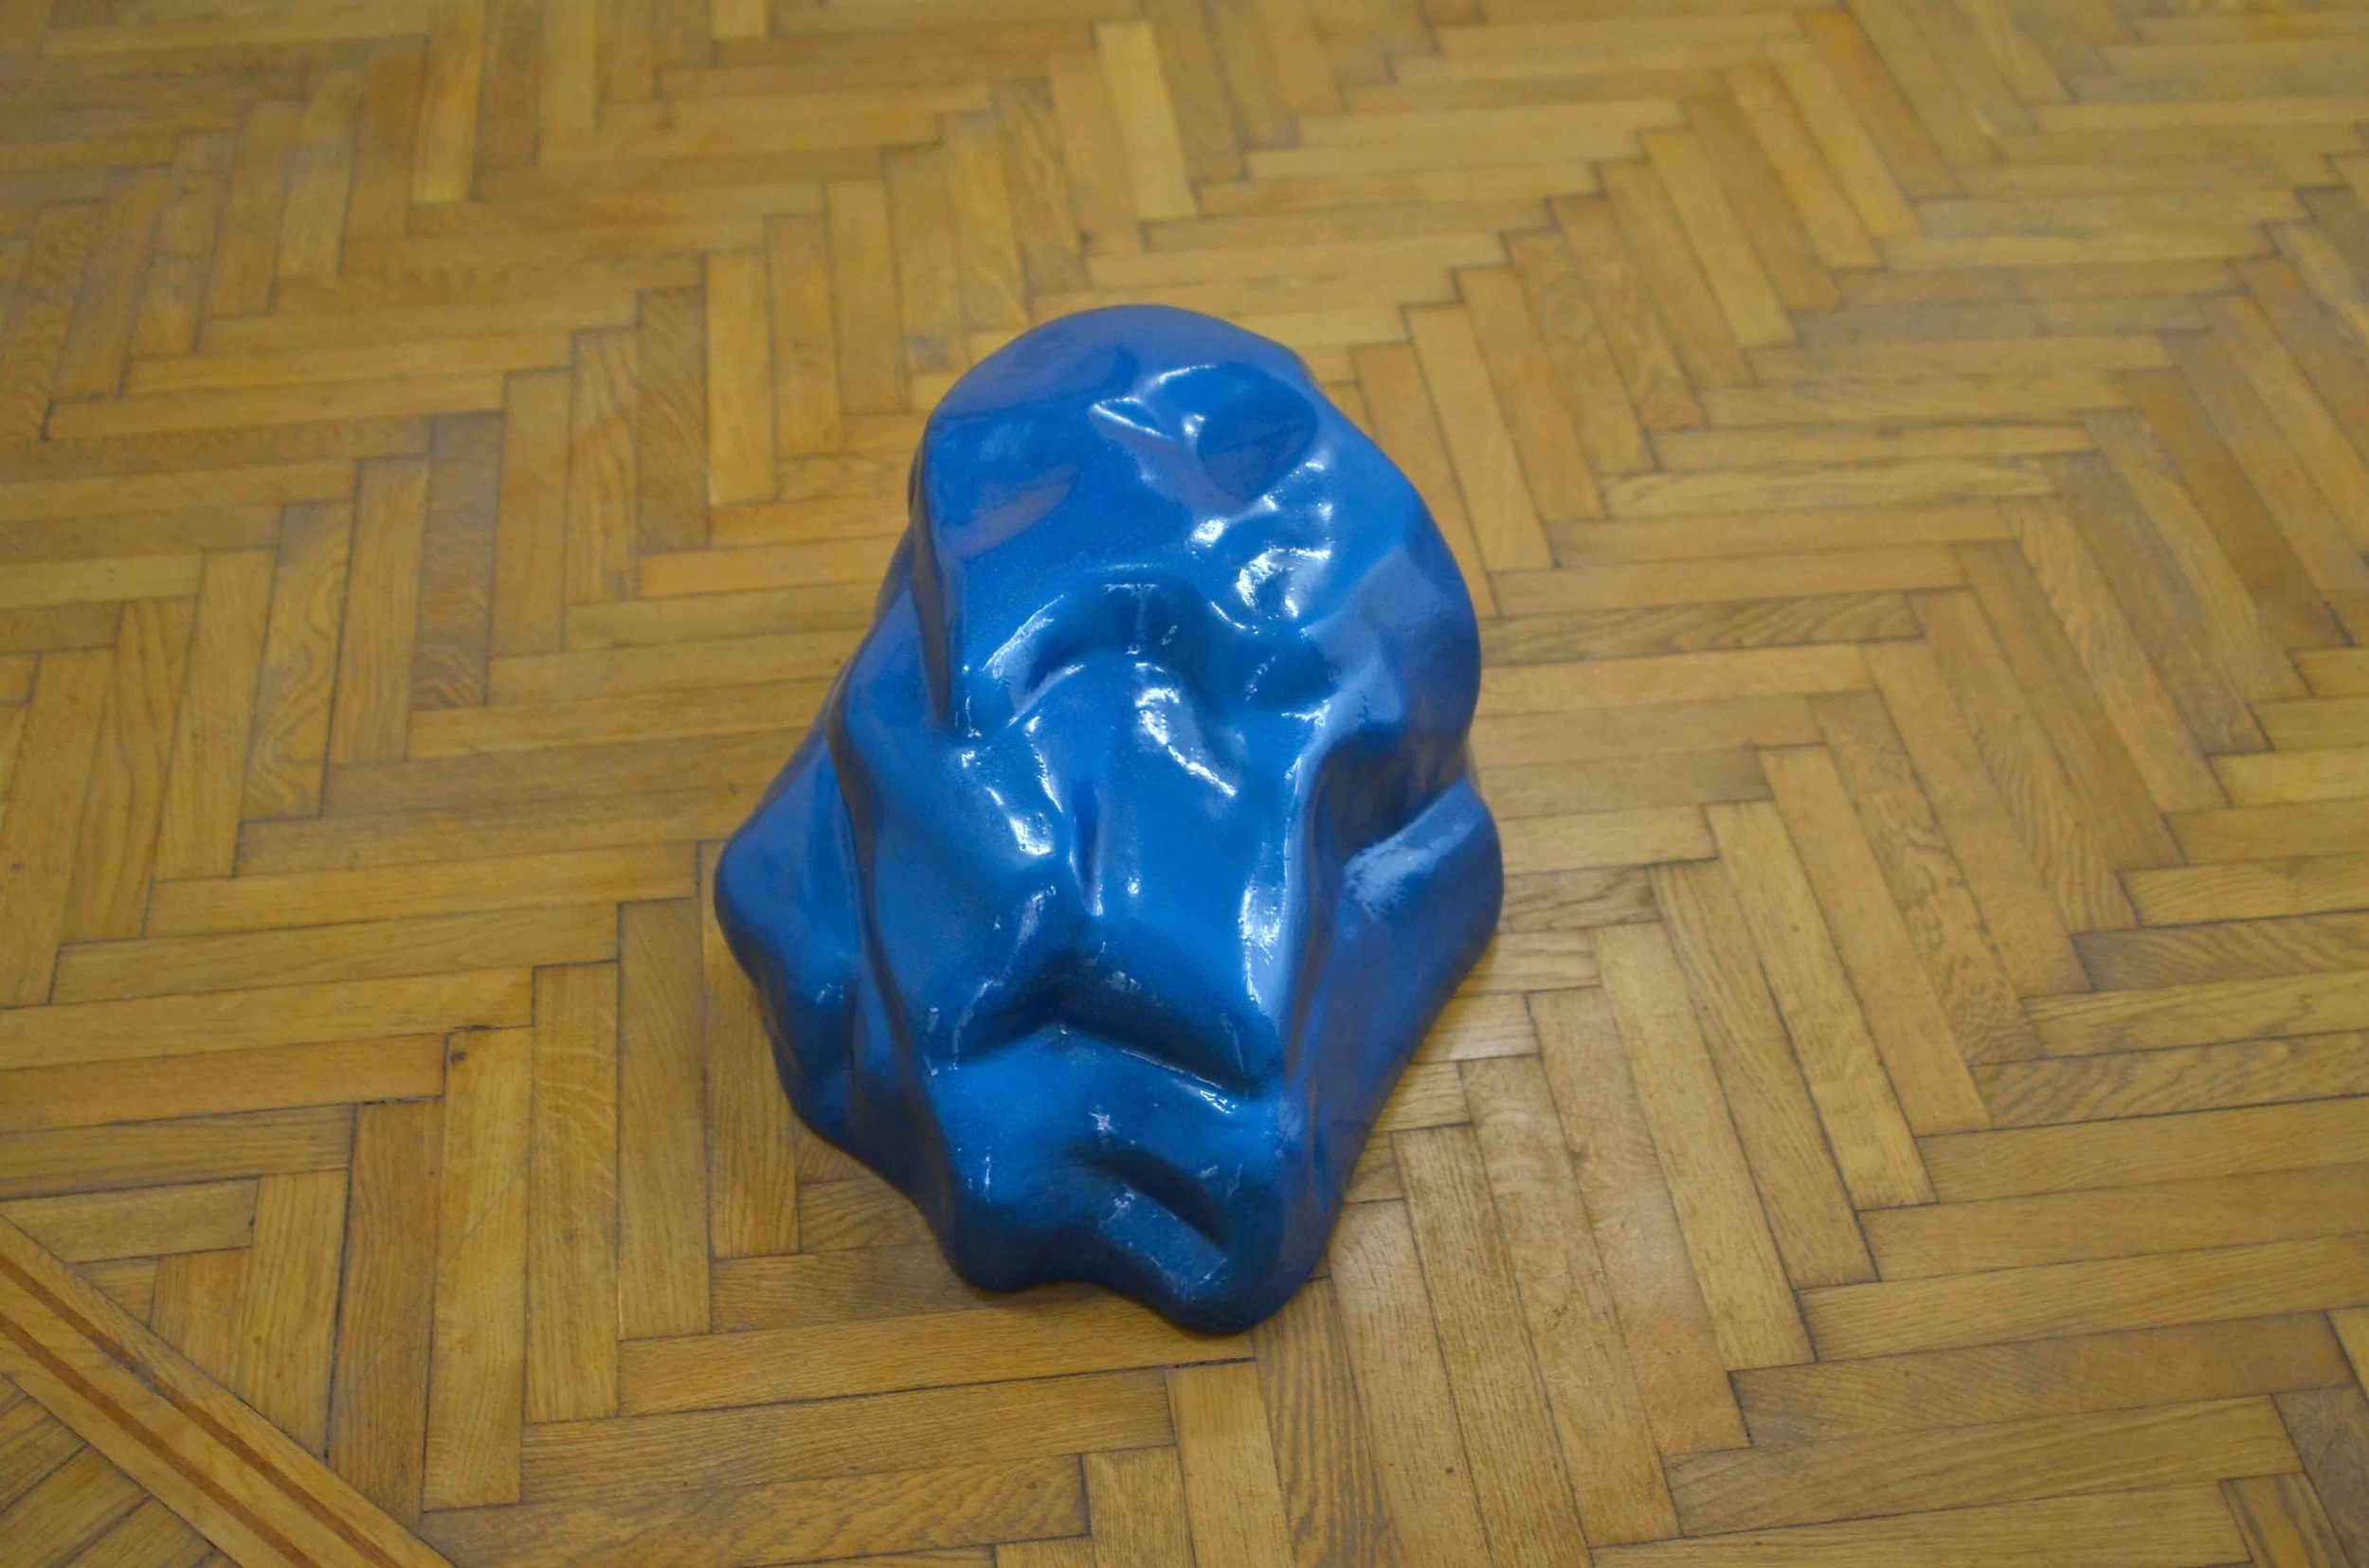 Malak Helmy, A salt rock exits a video and becomes a puddle of blue #1, fiberglass, 2013, 34 x 46 x 26 cm. Edition 1 of 4 + 2 AP